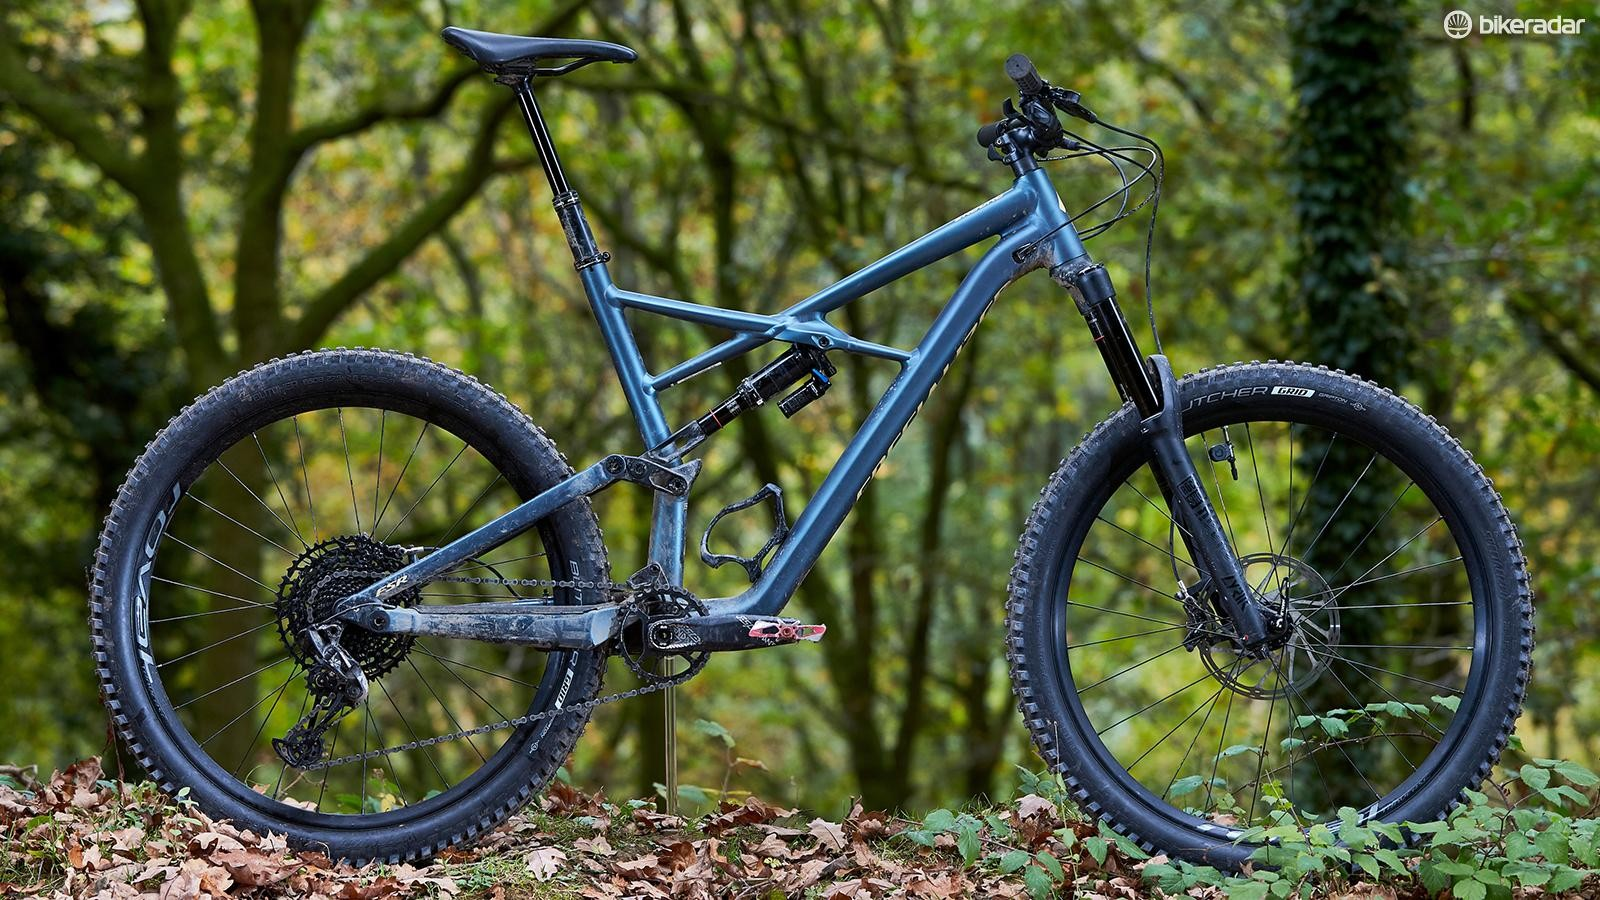 Fastest tyres for mountain biking: we test 2 3in, 2 6in and